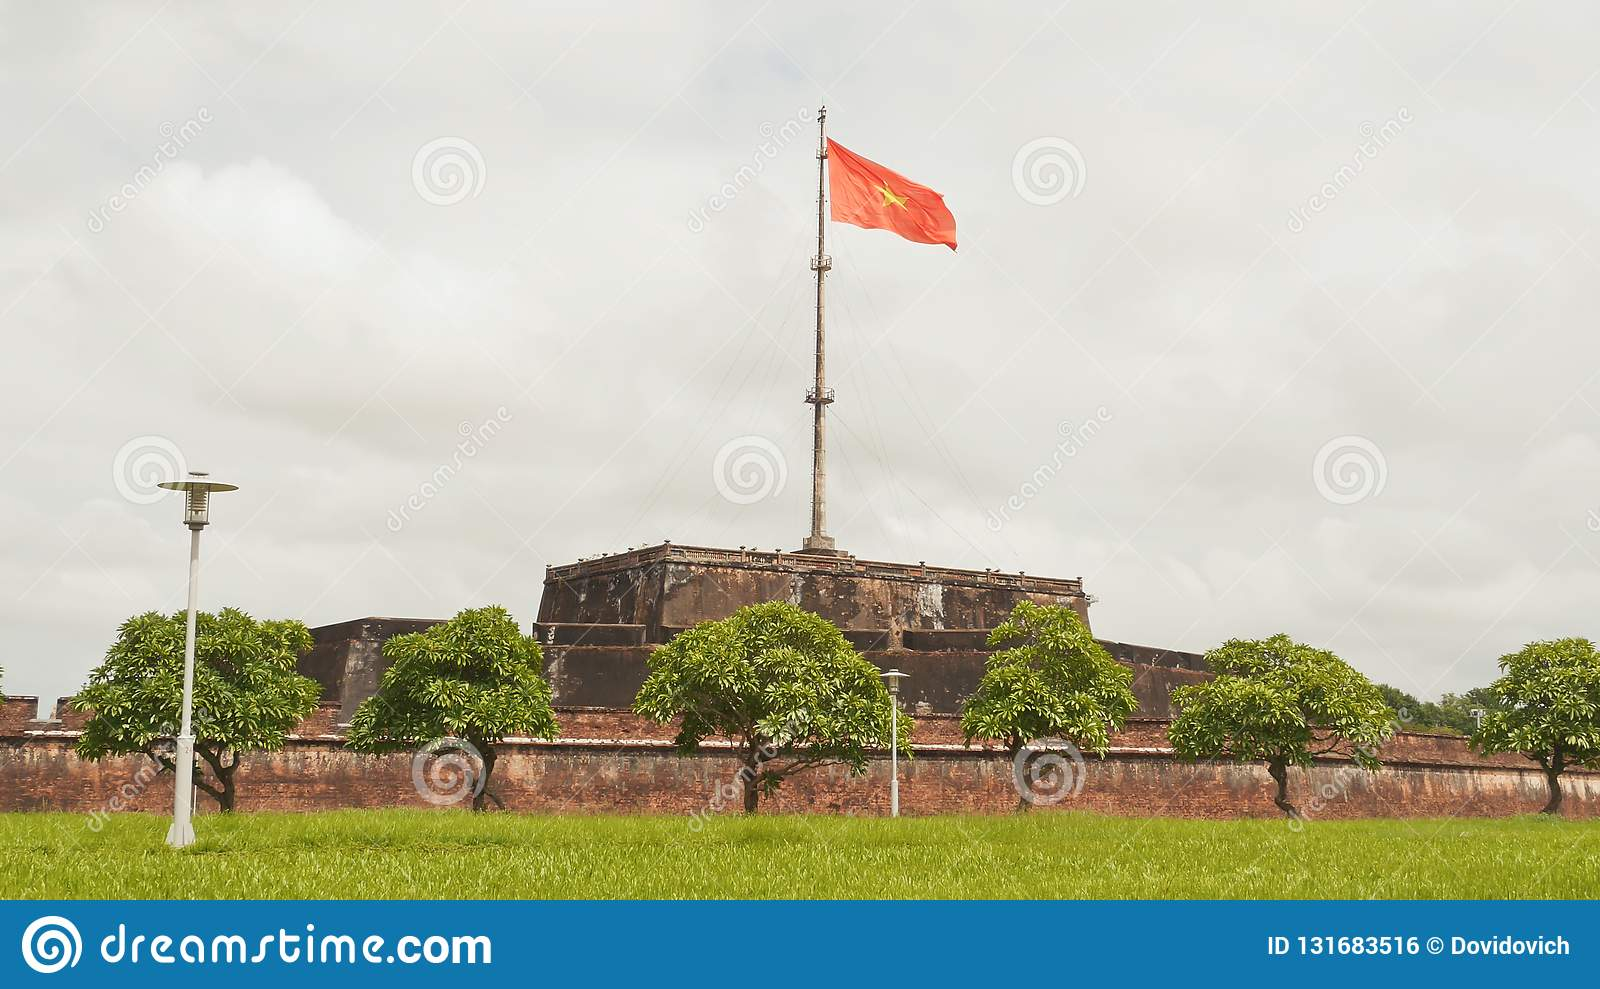 Imperial Royal Palace of Nguyen dynasty in Hue and fkag. Vietnam.